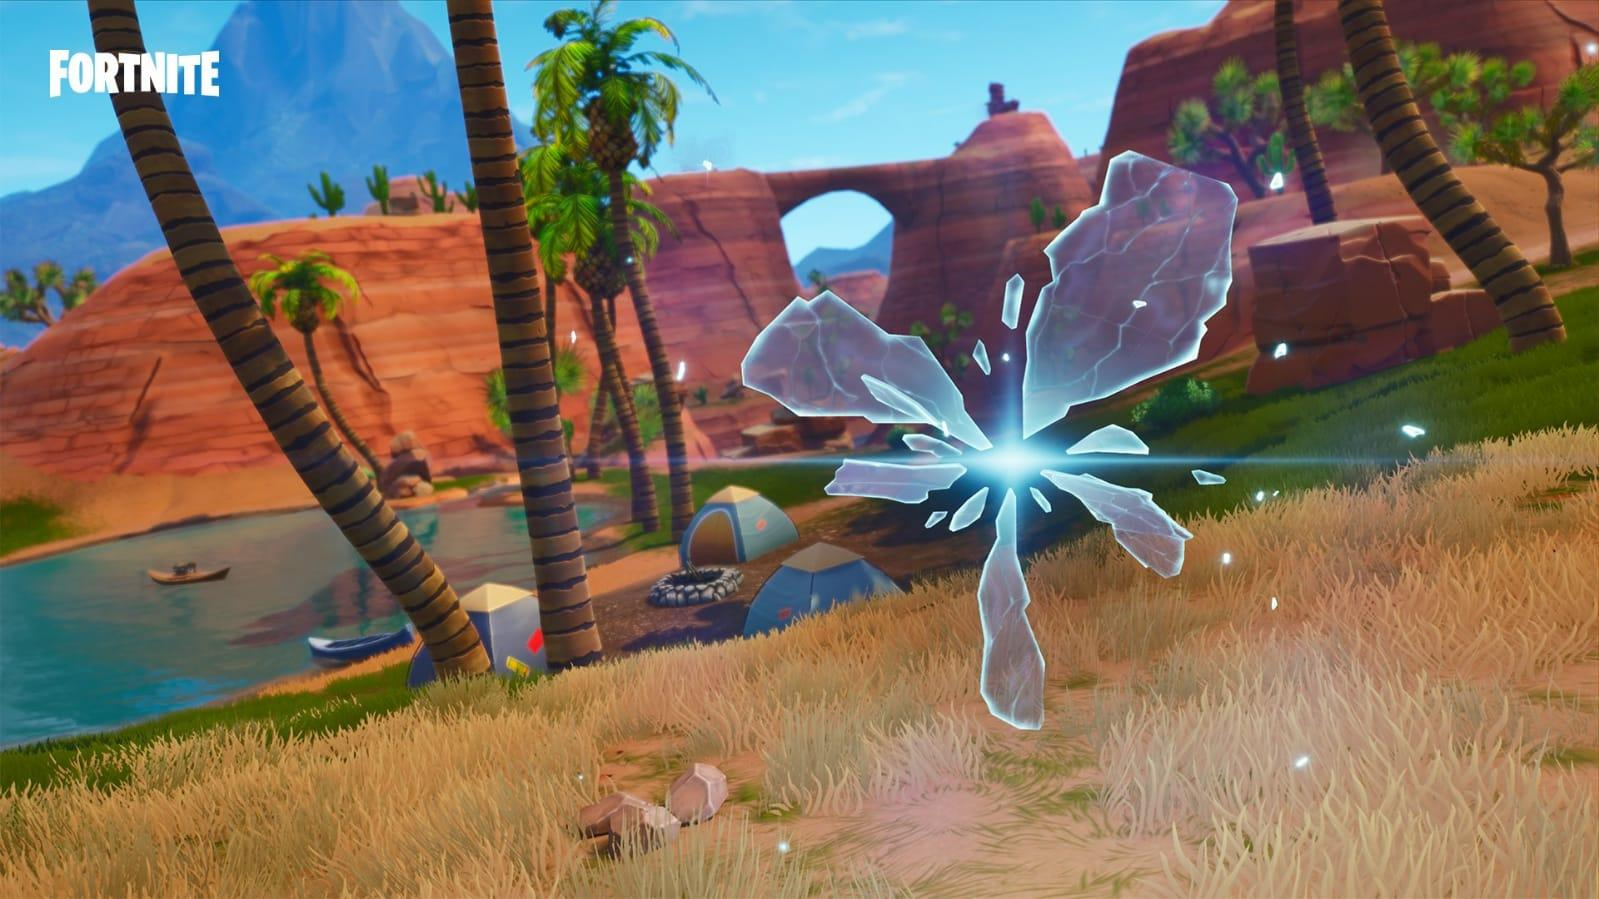 We will likely see even more damage to the map in Season 5